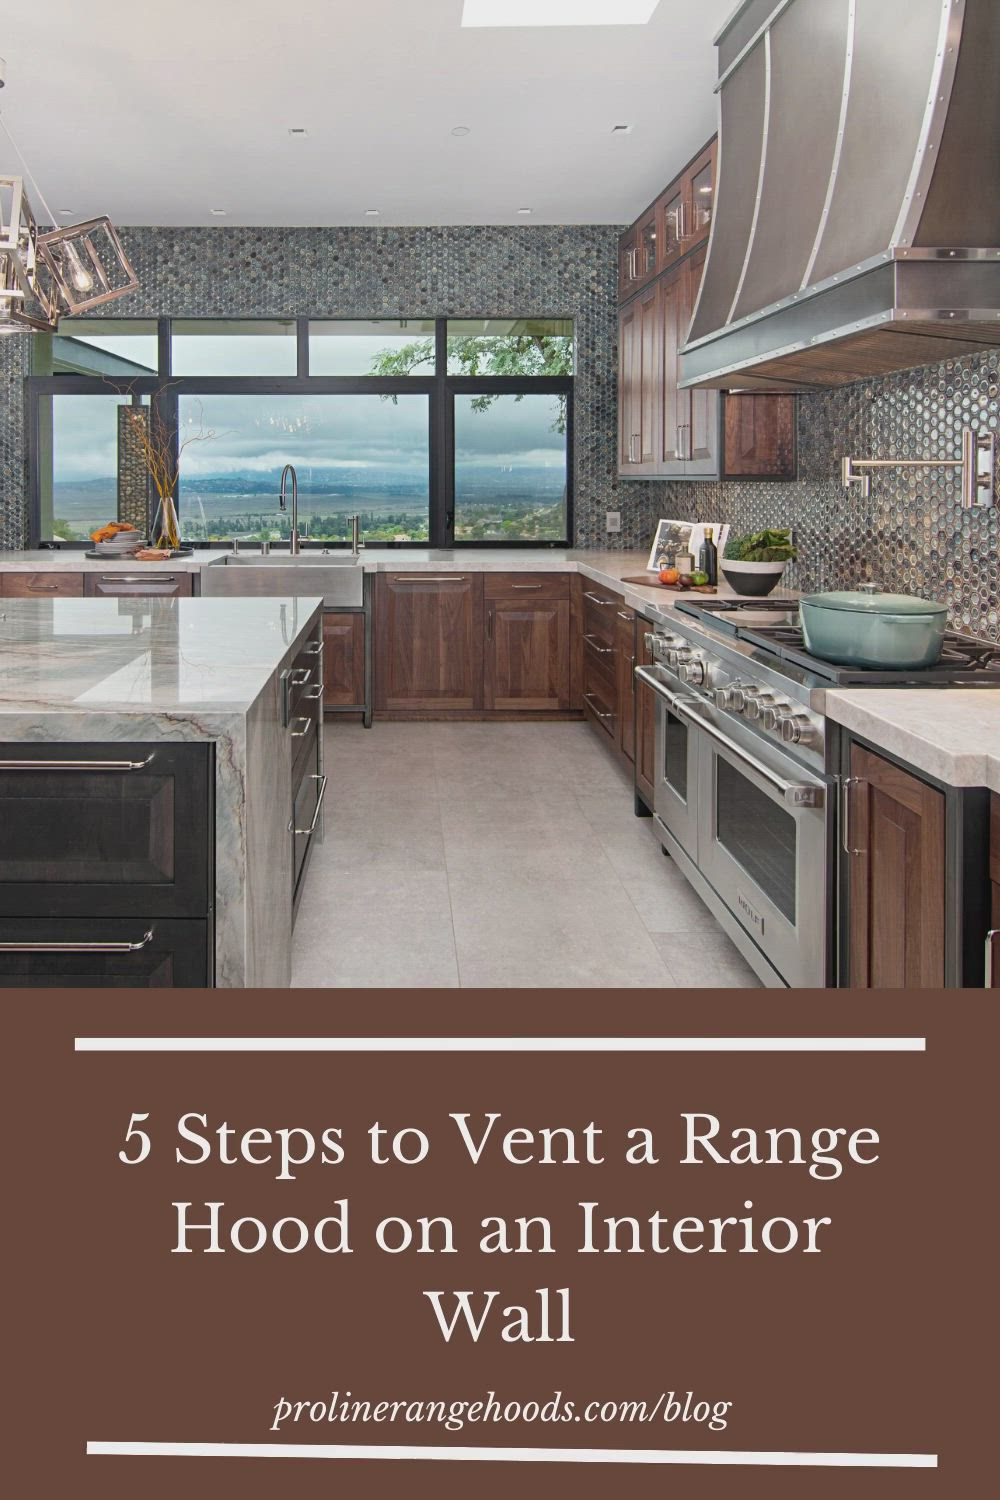 How To Vent A Range Hood On An Interior Wall Video Video In 2021 Range Hood Interior Walls Interior